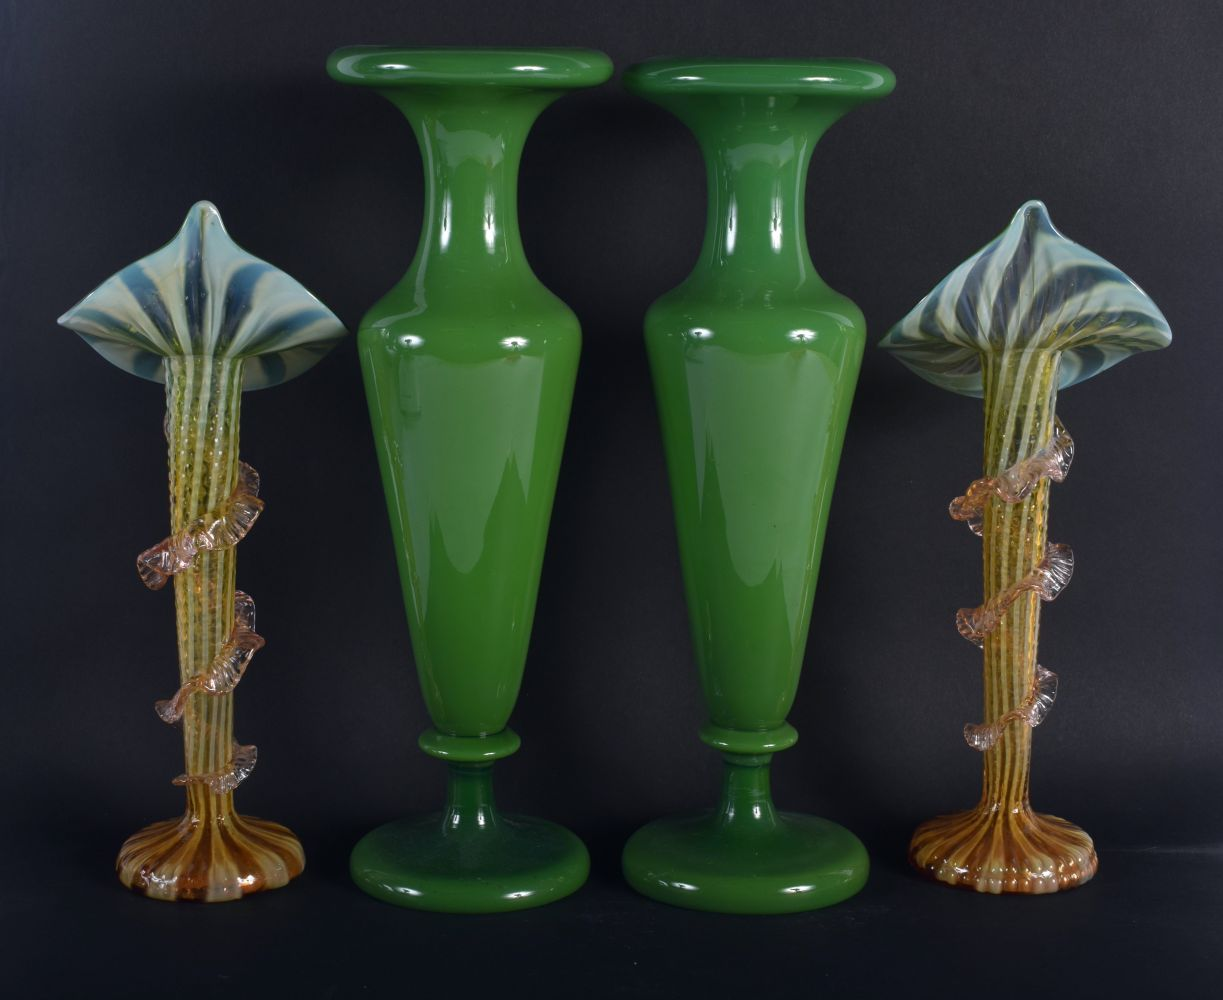 A LARGE PAIR OF VINTAGE OLIVE GREEN VASES together with a smaller pair. Largest 37 cm high. (4) - Image 2 of 2